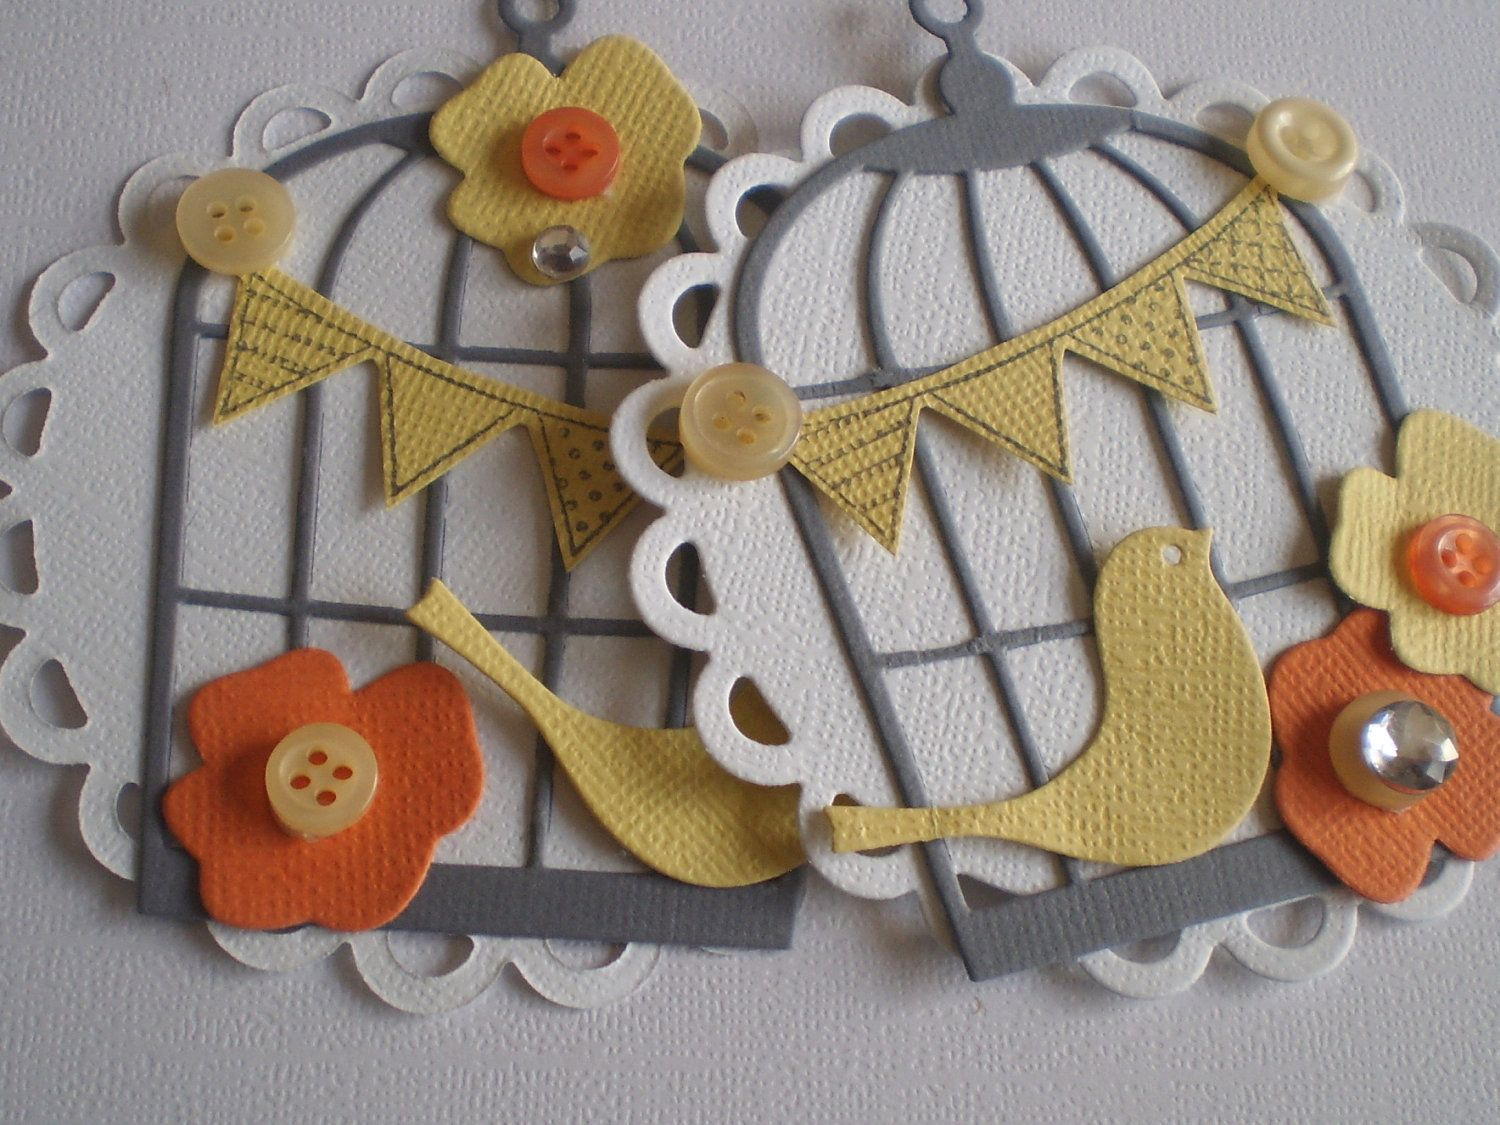 Handmade Scrapbooking Embellishments - set of 2 - bird with bird cage - great for card making too. $4.50, via Etsy.